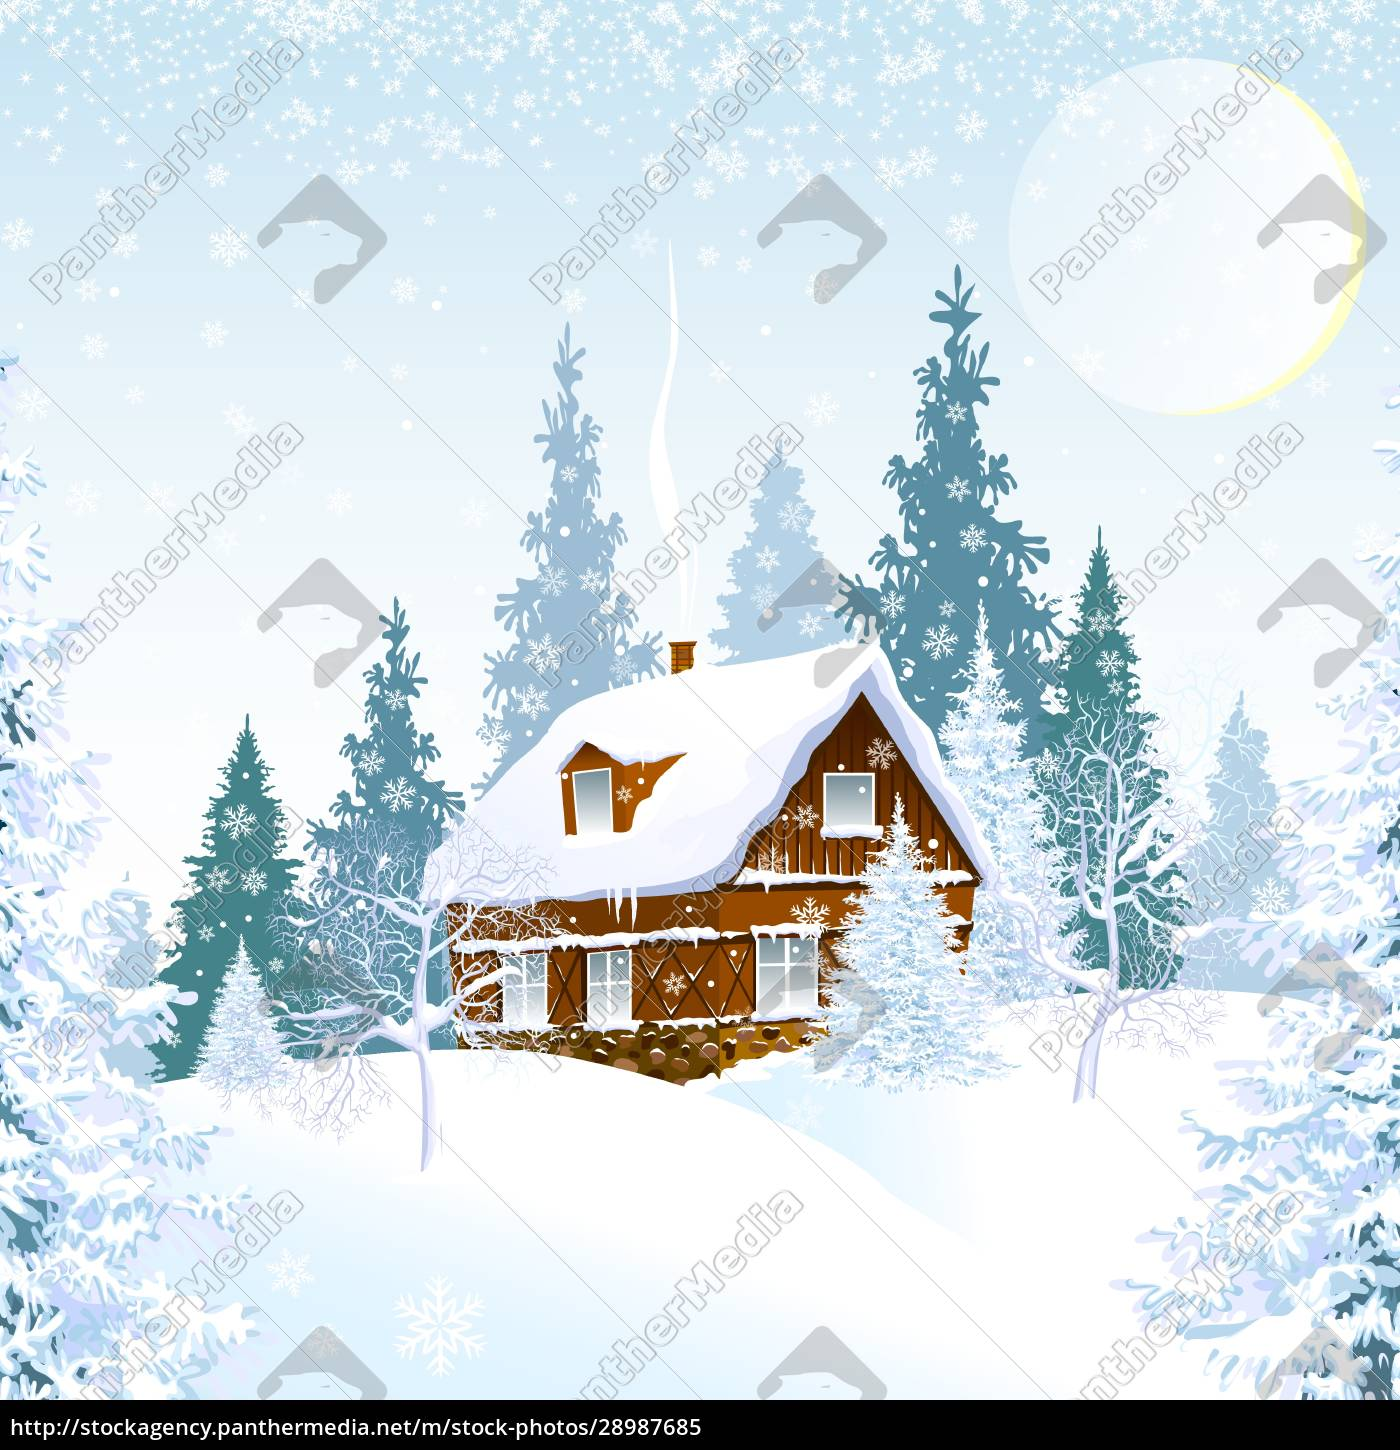 small, house, in, a, beautiful, winter - 28987685